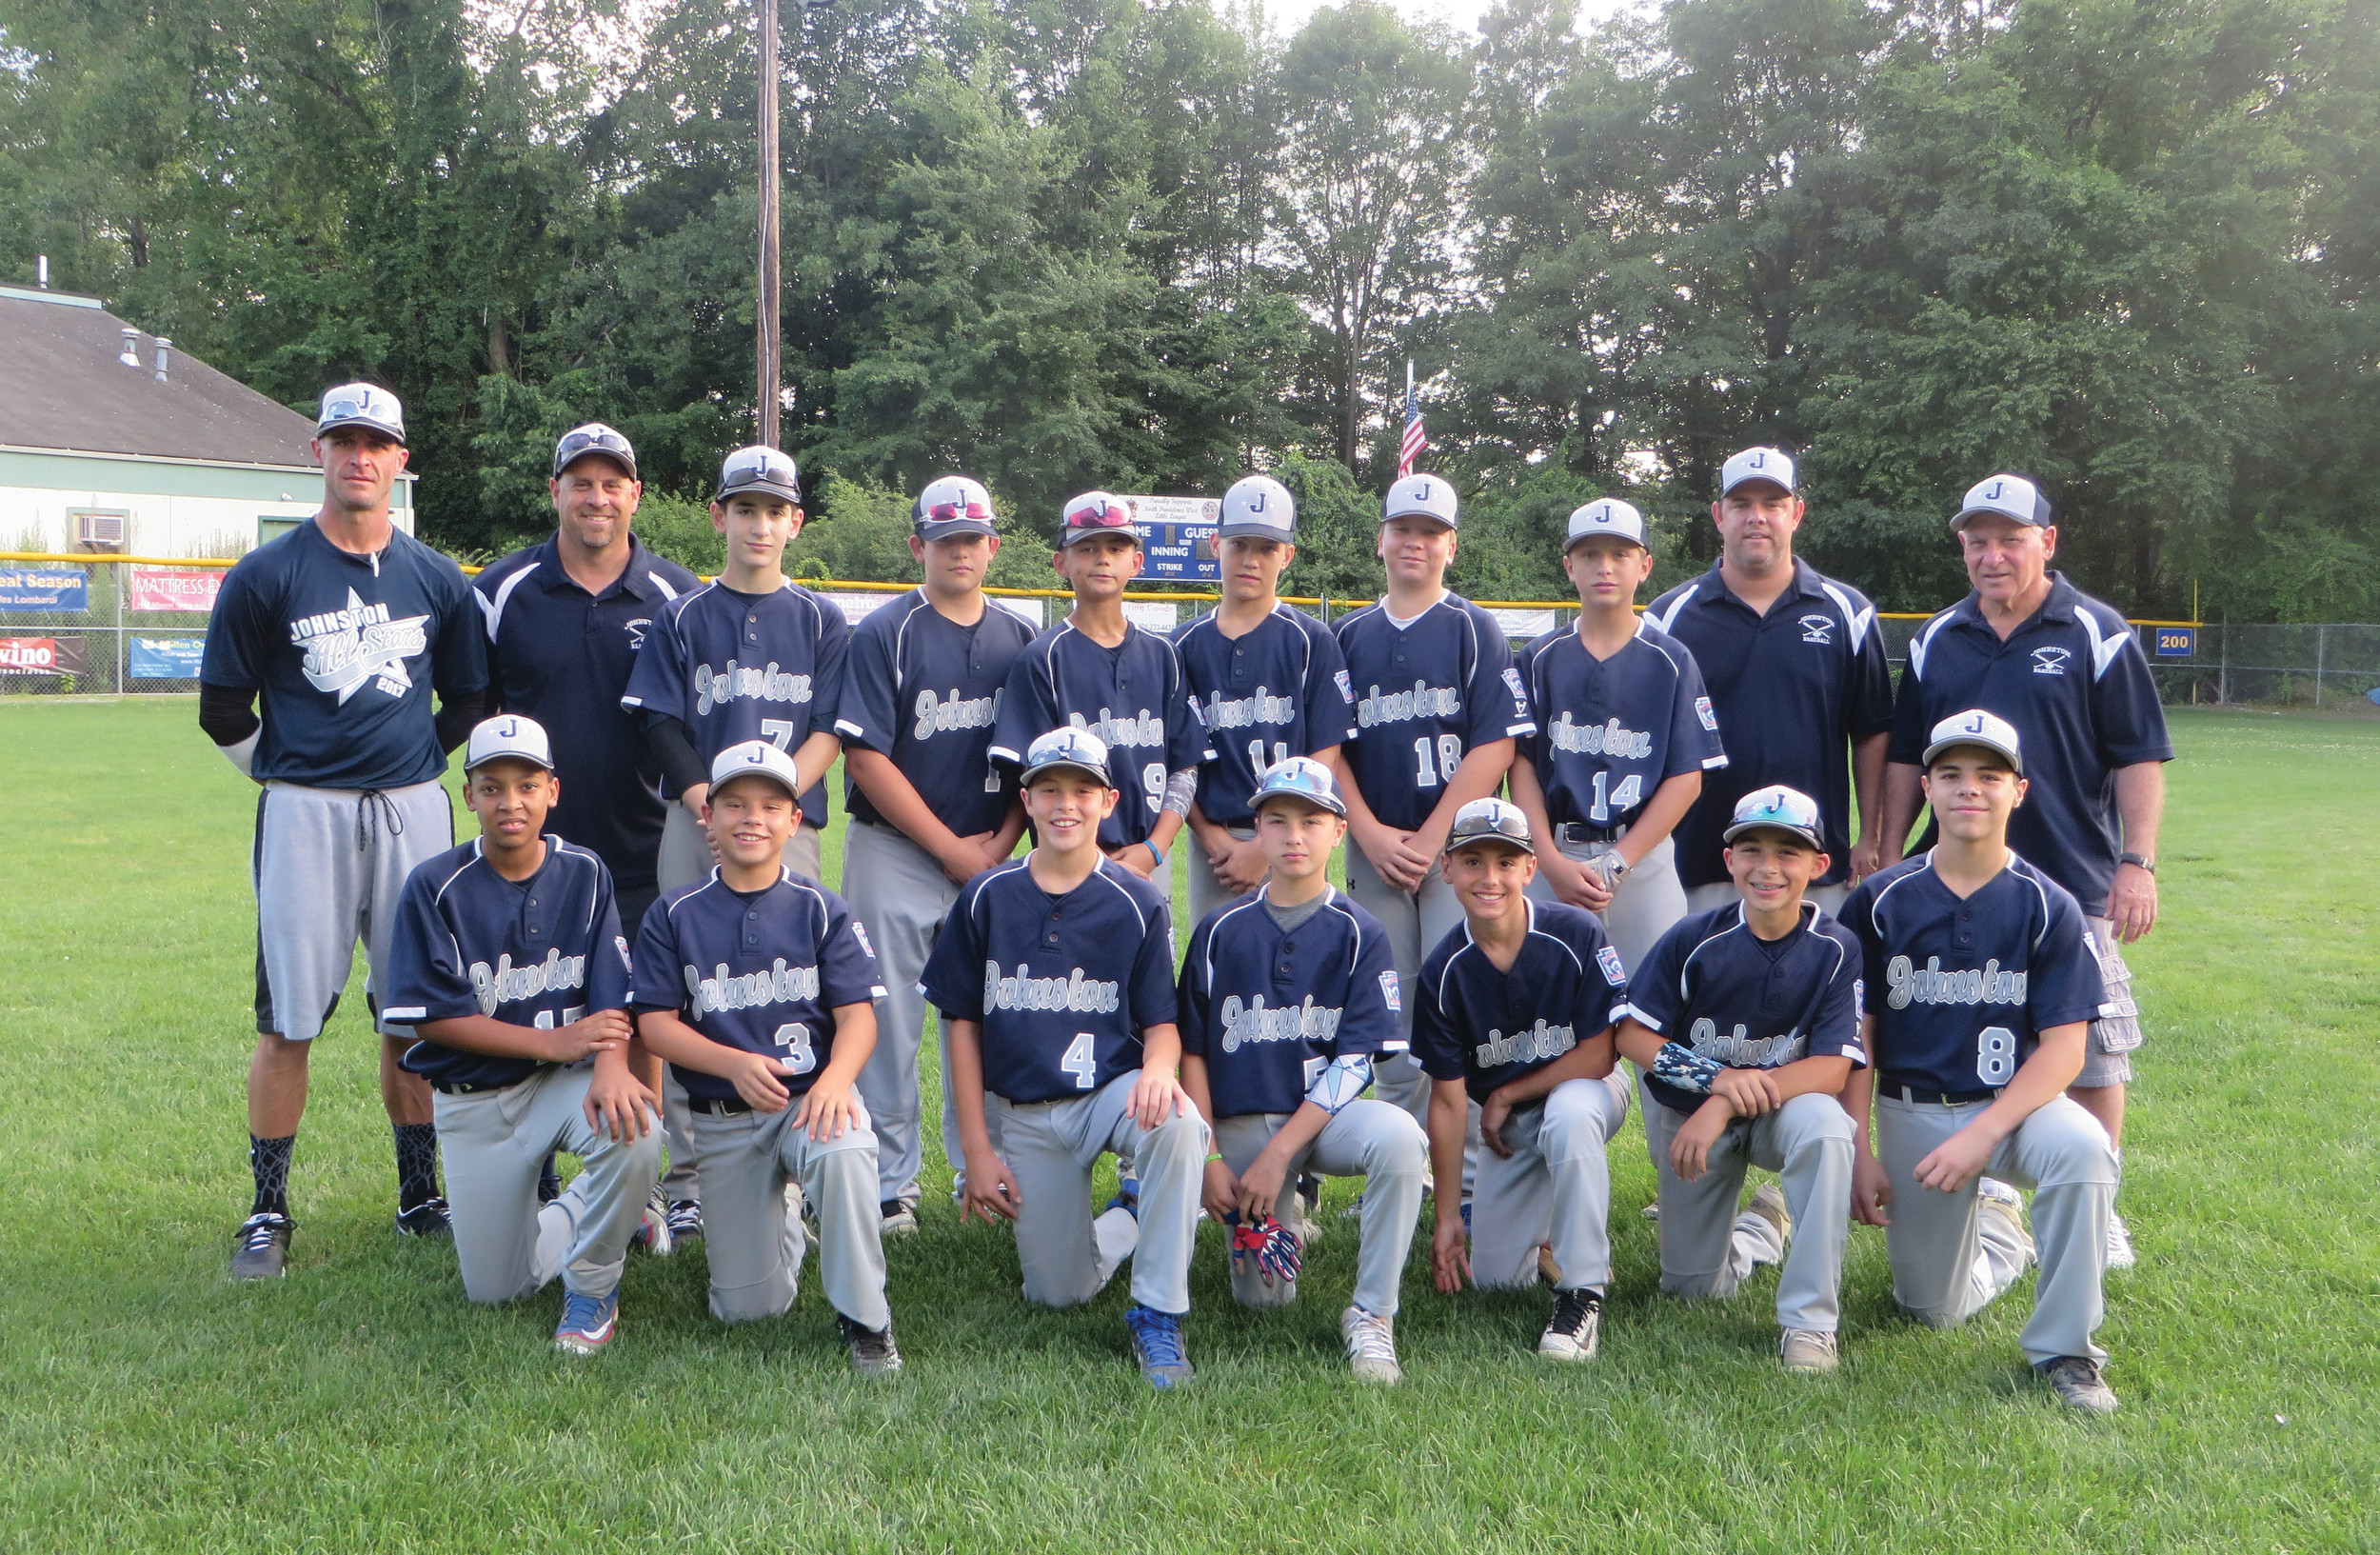 SUPER SQUAD: This is Johnston Little League's 11/12-year-old all-stars, who recently played their way to the District 1 final. This team includes, bottom row from left to right: Jonah Pecchi, Cameron Salois, Derek Salvatore, Dante Iafrate, Dylan Martins, Michael Salzillo and Joe Vento. Back row: Coaches Brian Iafrate and Dan Salvatore, Dante Ricci, Ryan Nichols, Hudson Carvalho, Joe Domenico, Michael LaFlamme, Andrew Picard, Coach Dave Lavelle and Manager Bob Guidici.